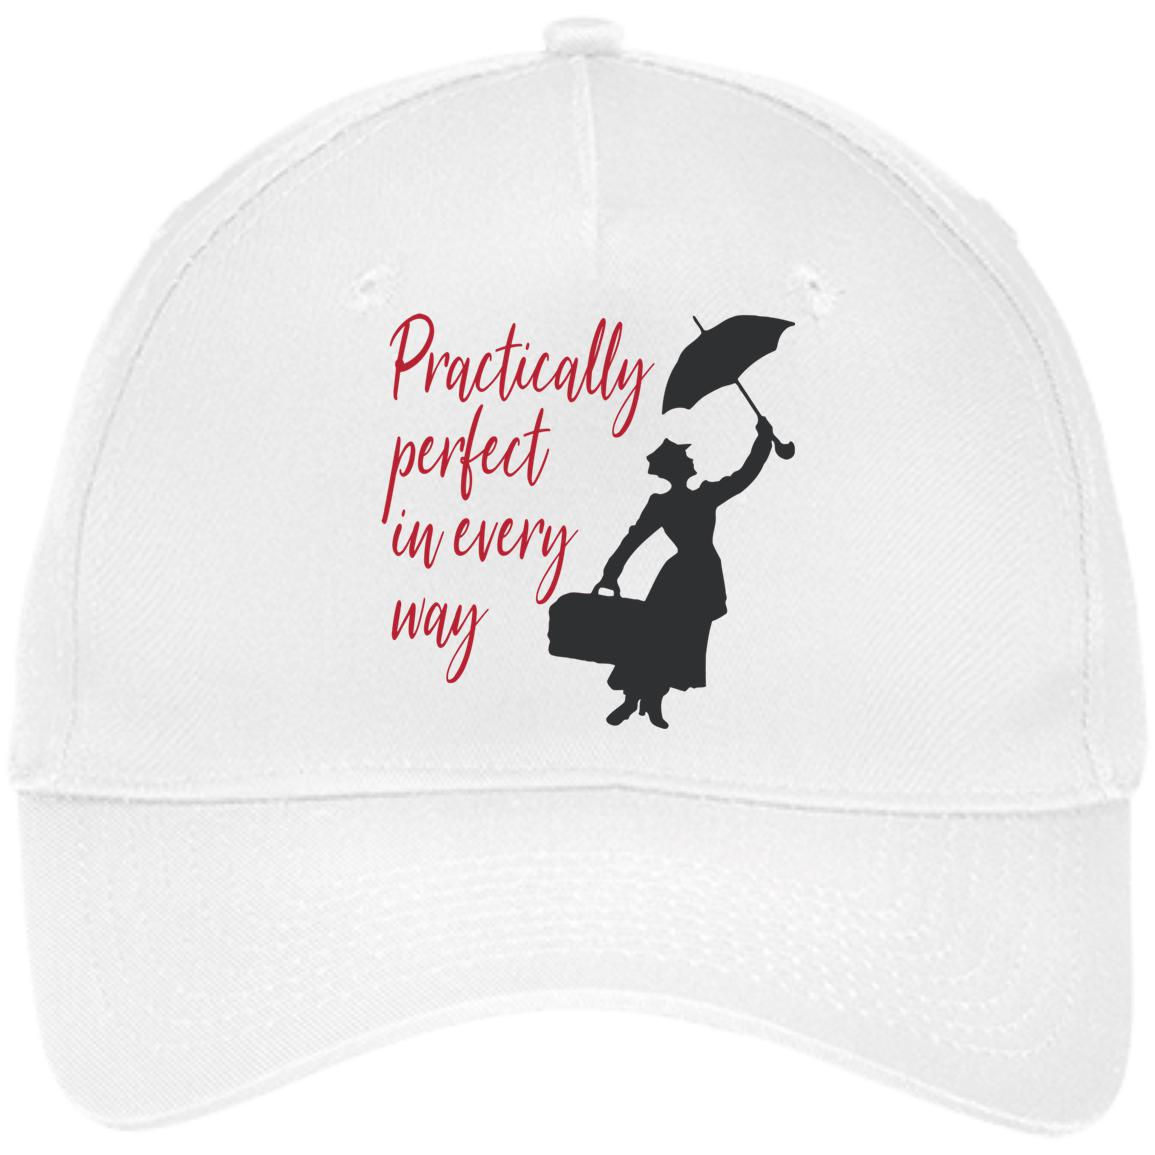 Mary Poppins Practically Perfect - Embroidered Twill Cap